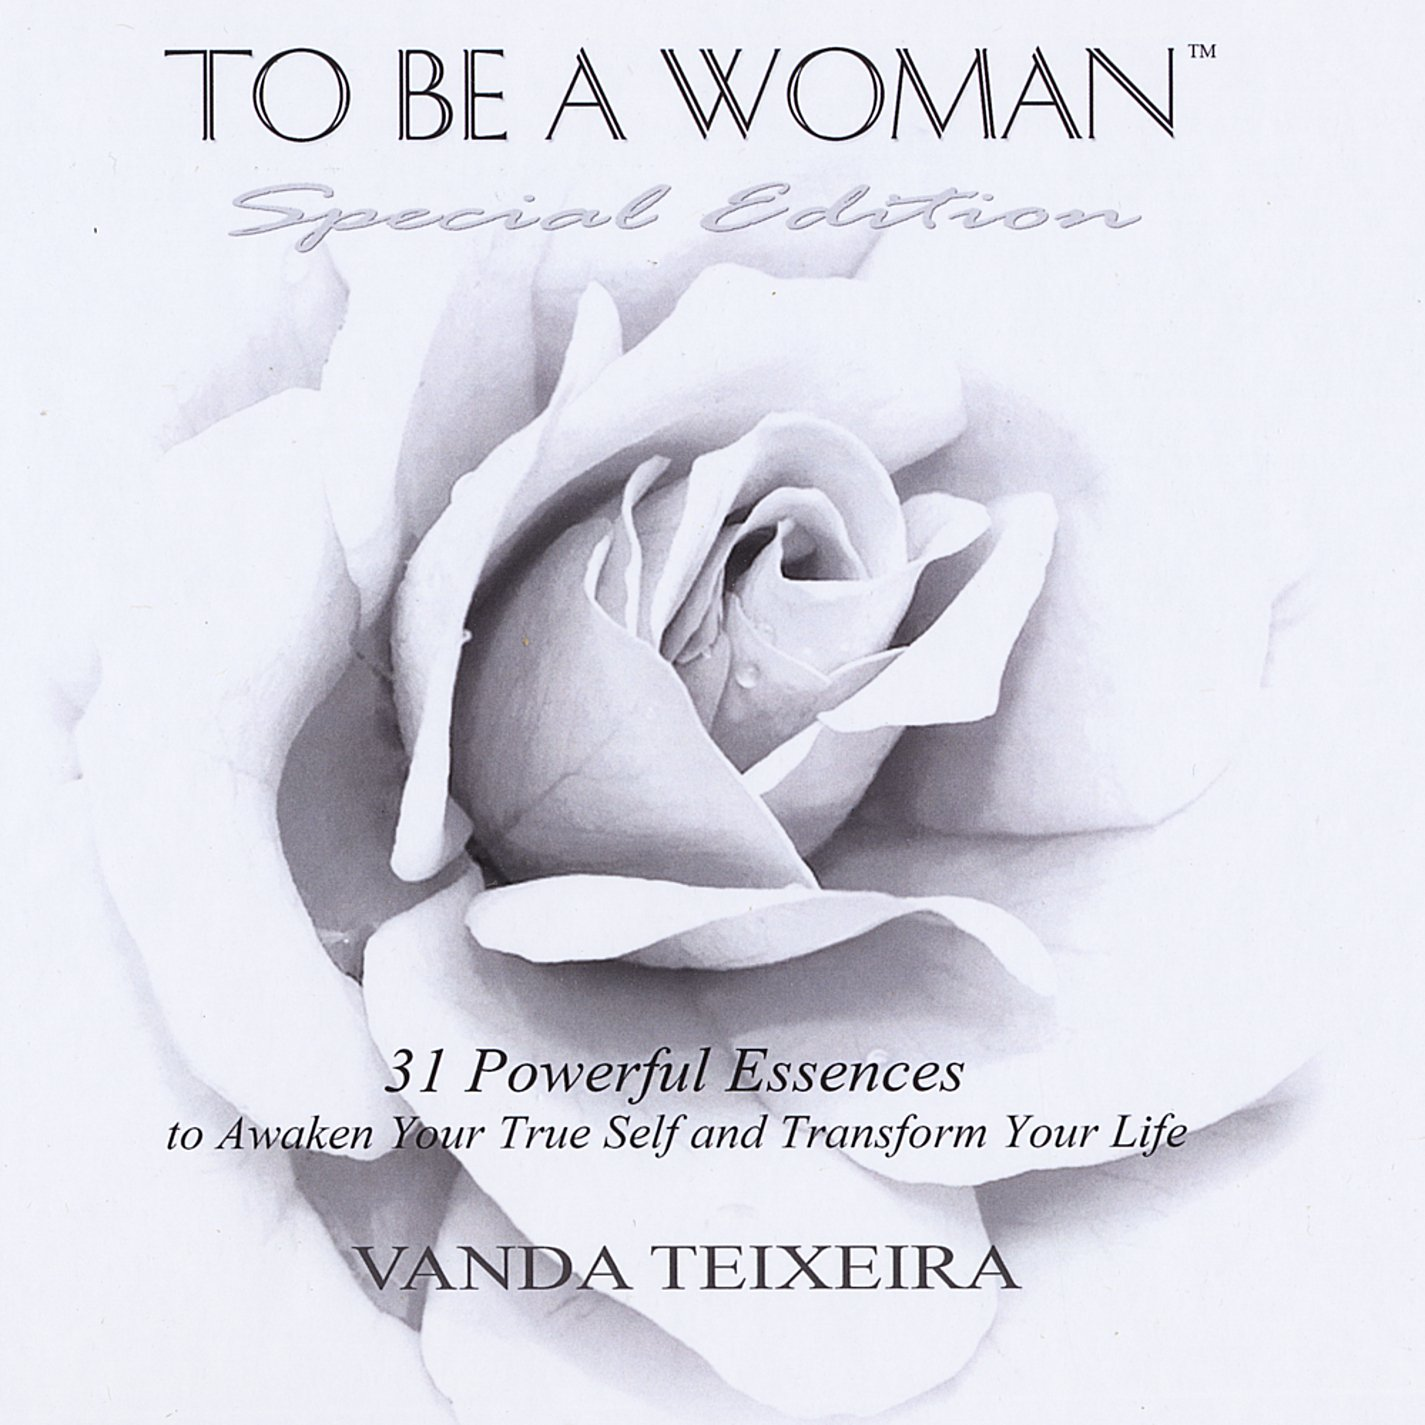 To Be a Woman Special Edition: 31 Powerful Essences to Awaken Your True Self and Transform Your Life ebook